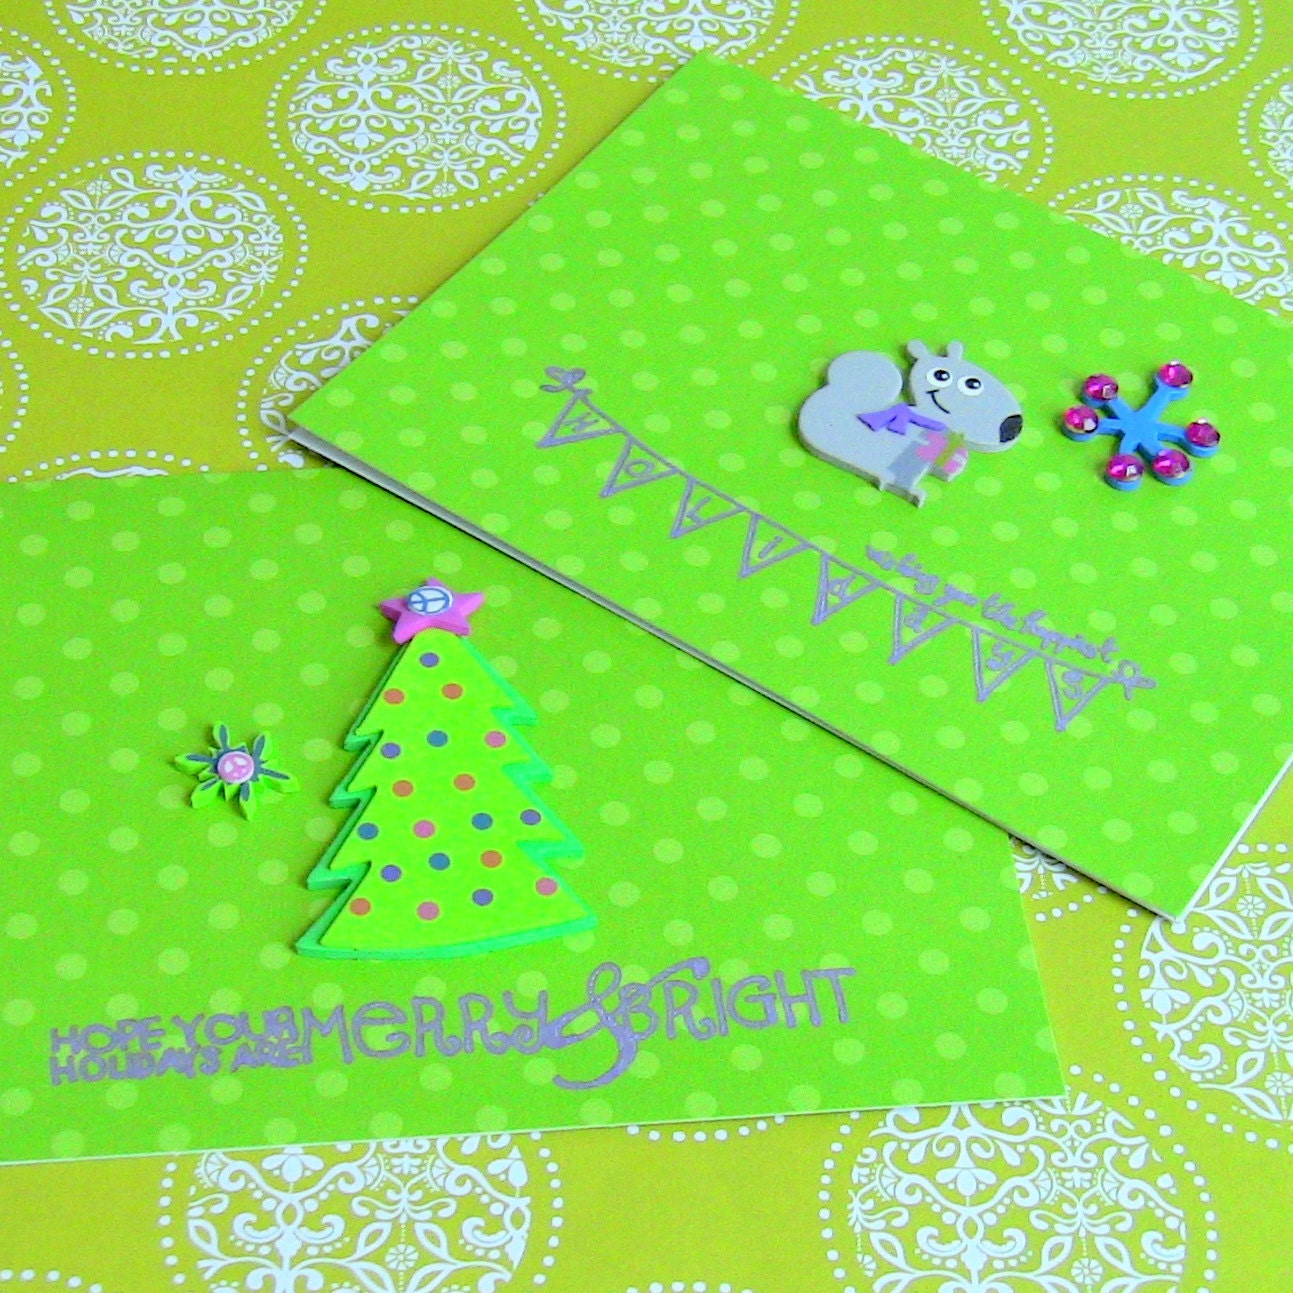 Great for Kids Set of 8 Lime Green Polka Dotted Winter Holidays / Christmas Cards With Groovy Stickers and Messages - Ready To Ship